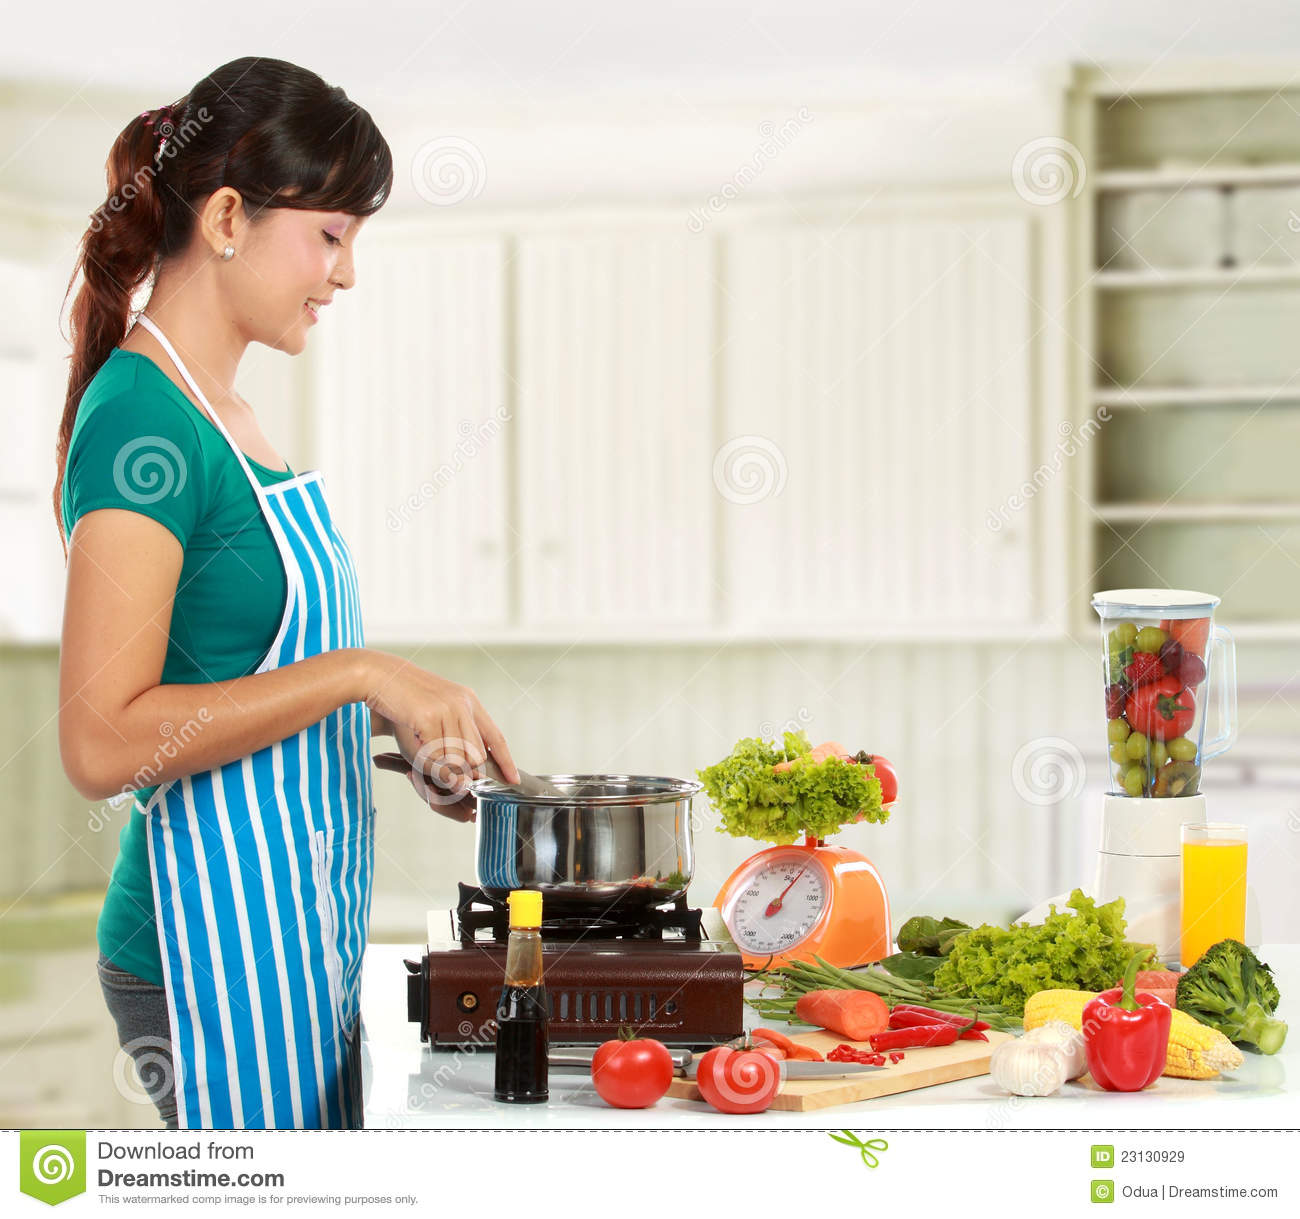 Women Kitchen: Woman Cooking In The Kitchen Stock Image